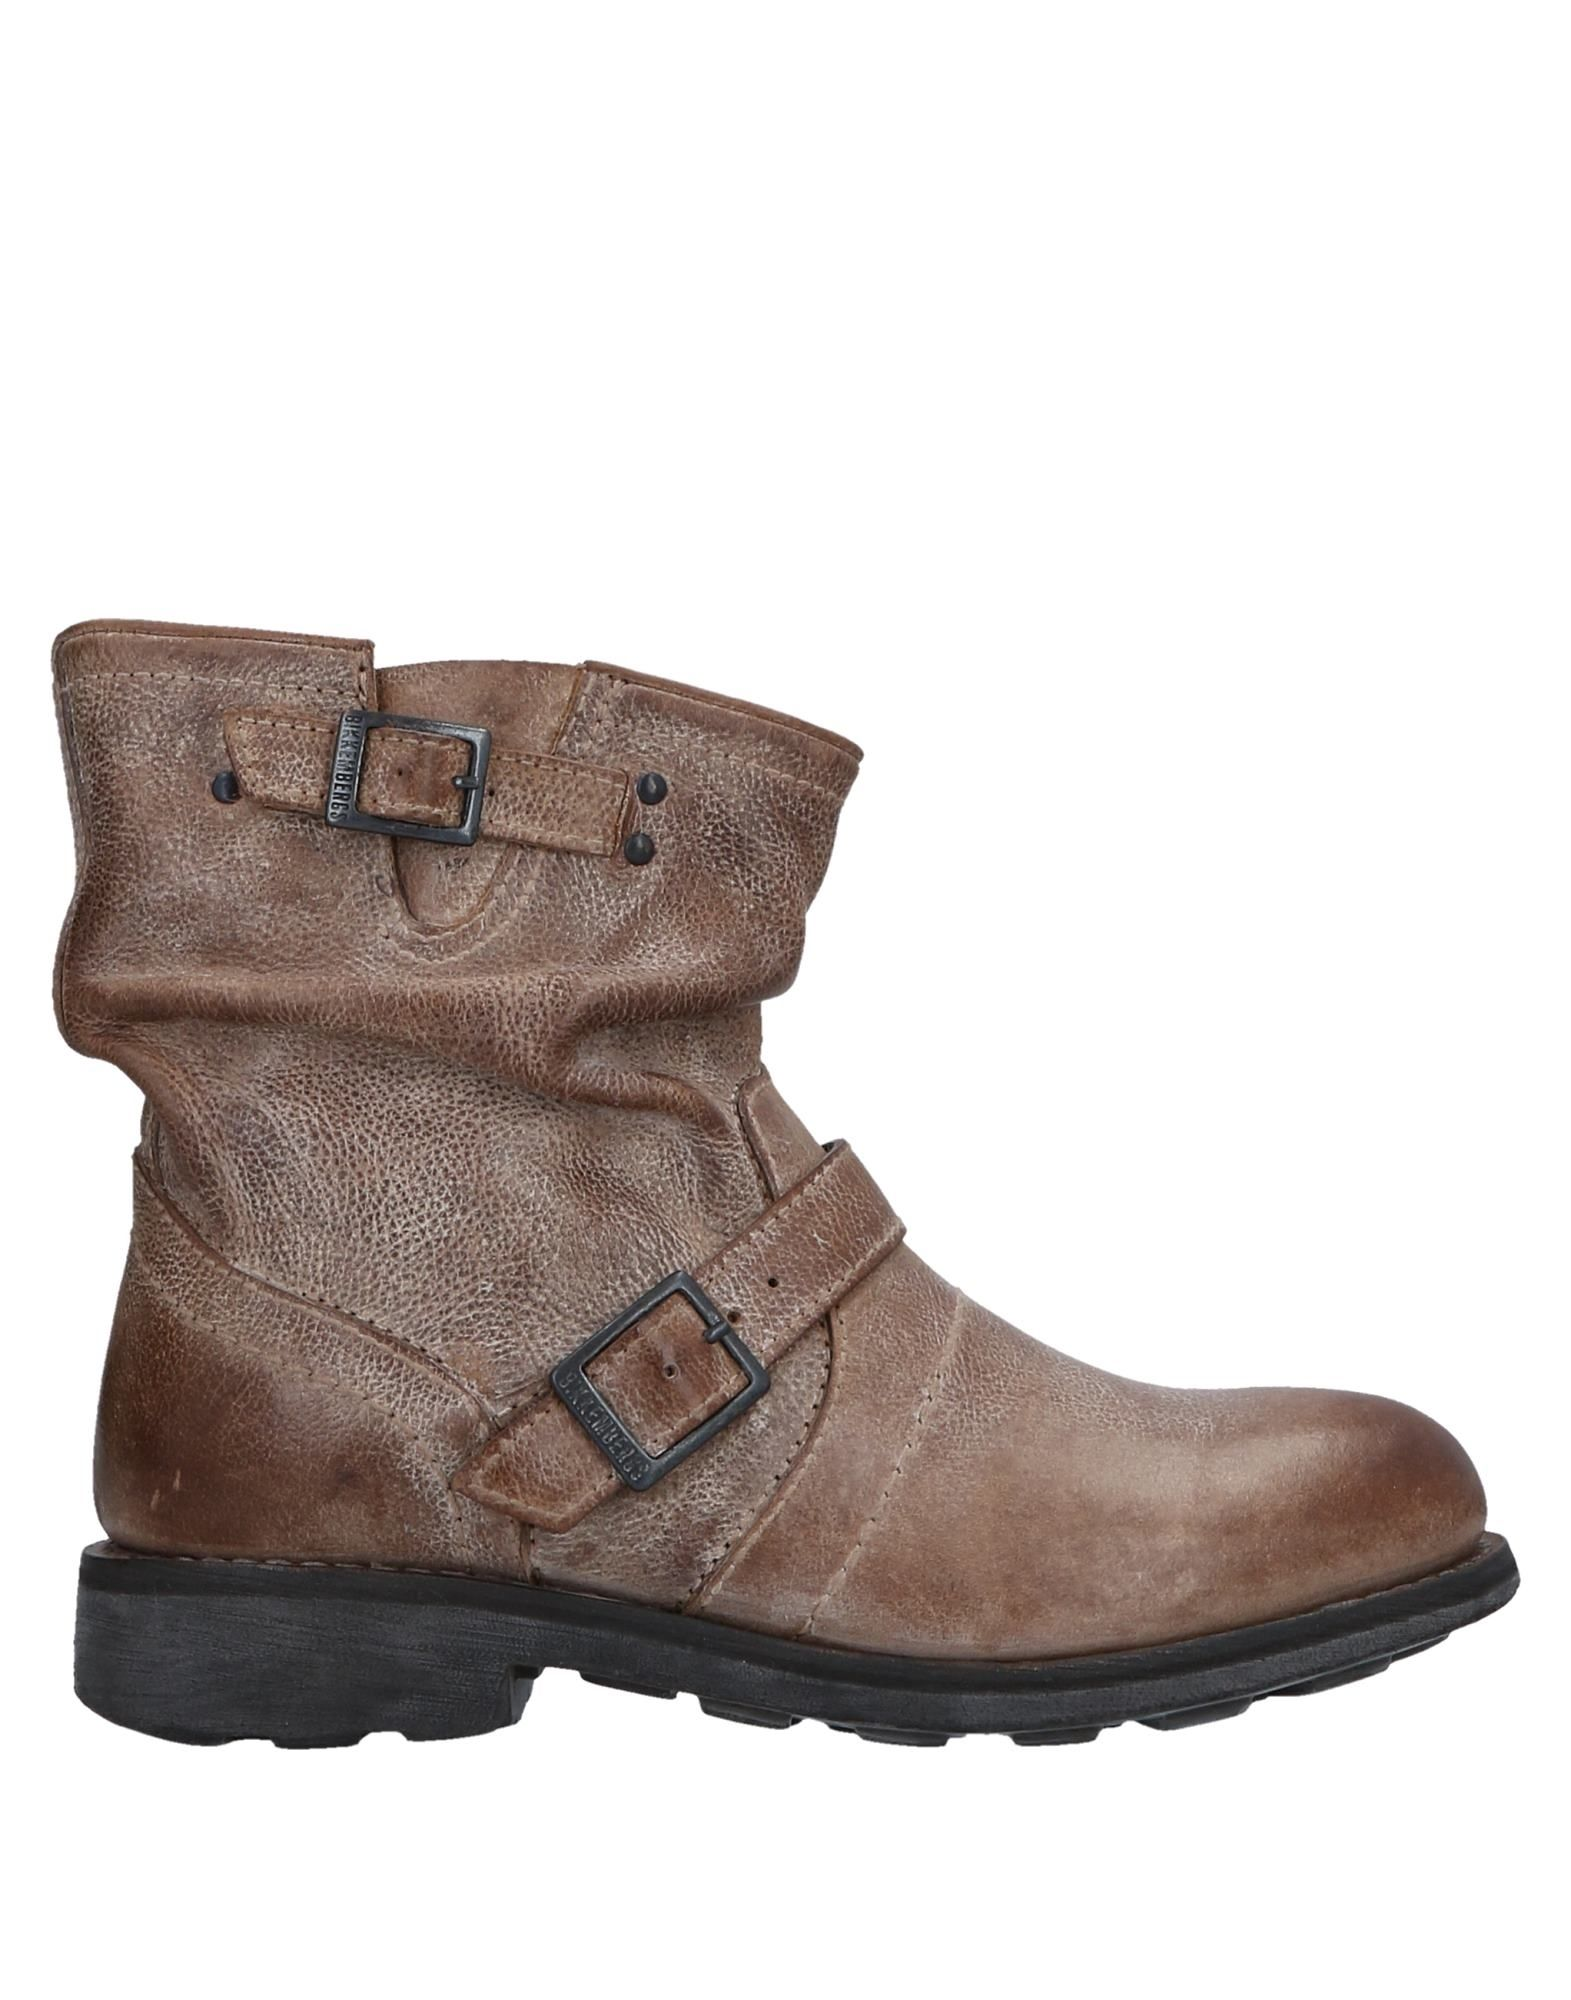 Bottine Bikkembergs Femme - Bottines saisonnier Bikkembergs Marron Dédouanement saisonnier Bottines f90410